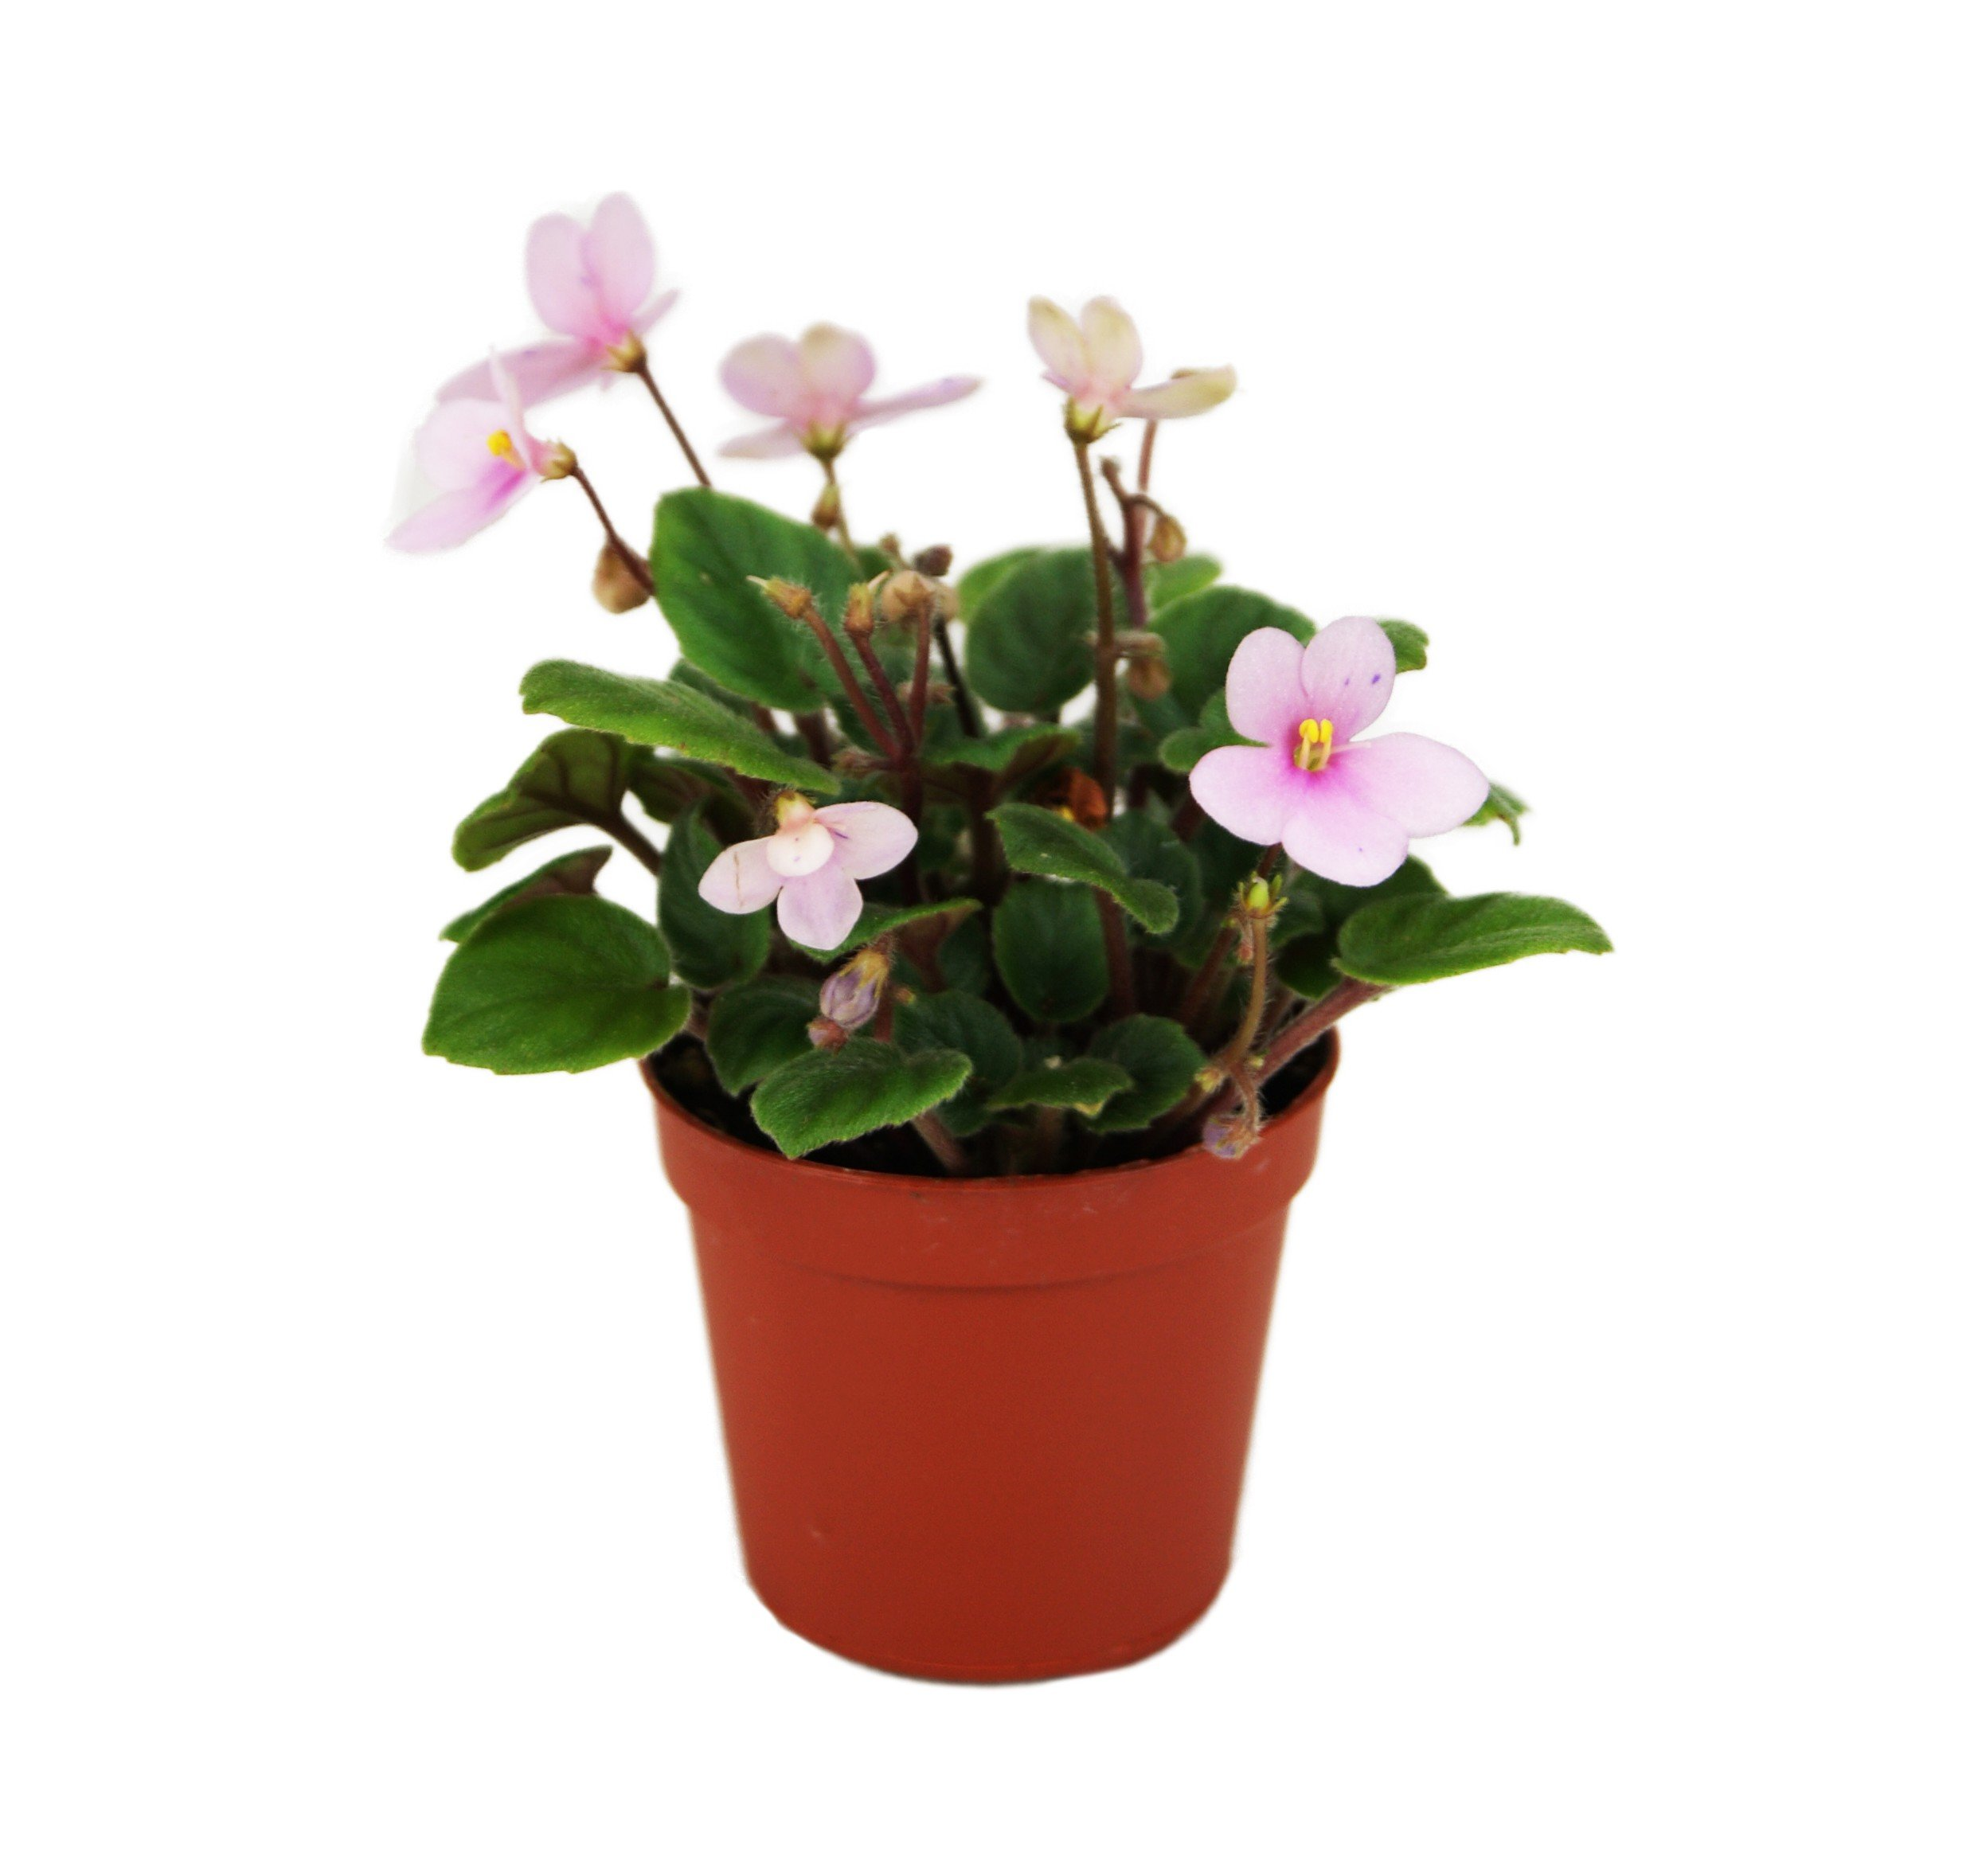 Miniature African Violet (Grower's Choice)